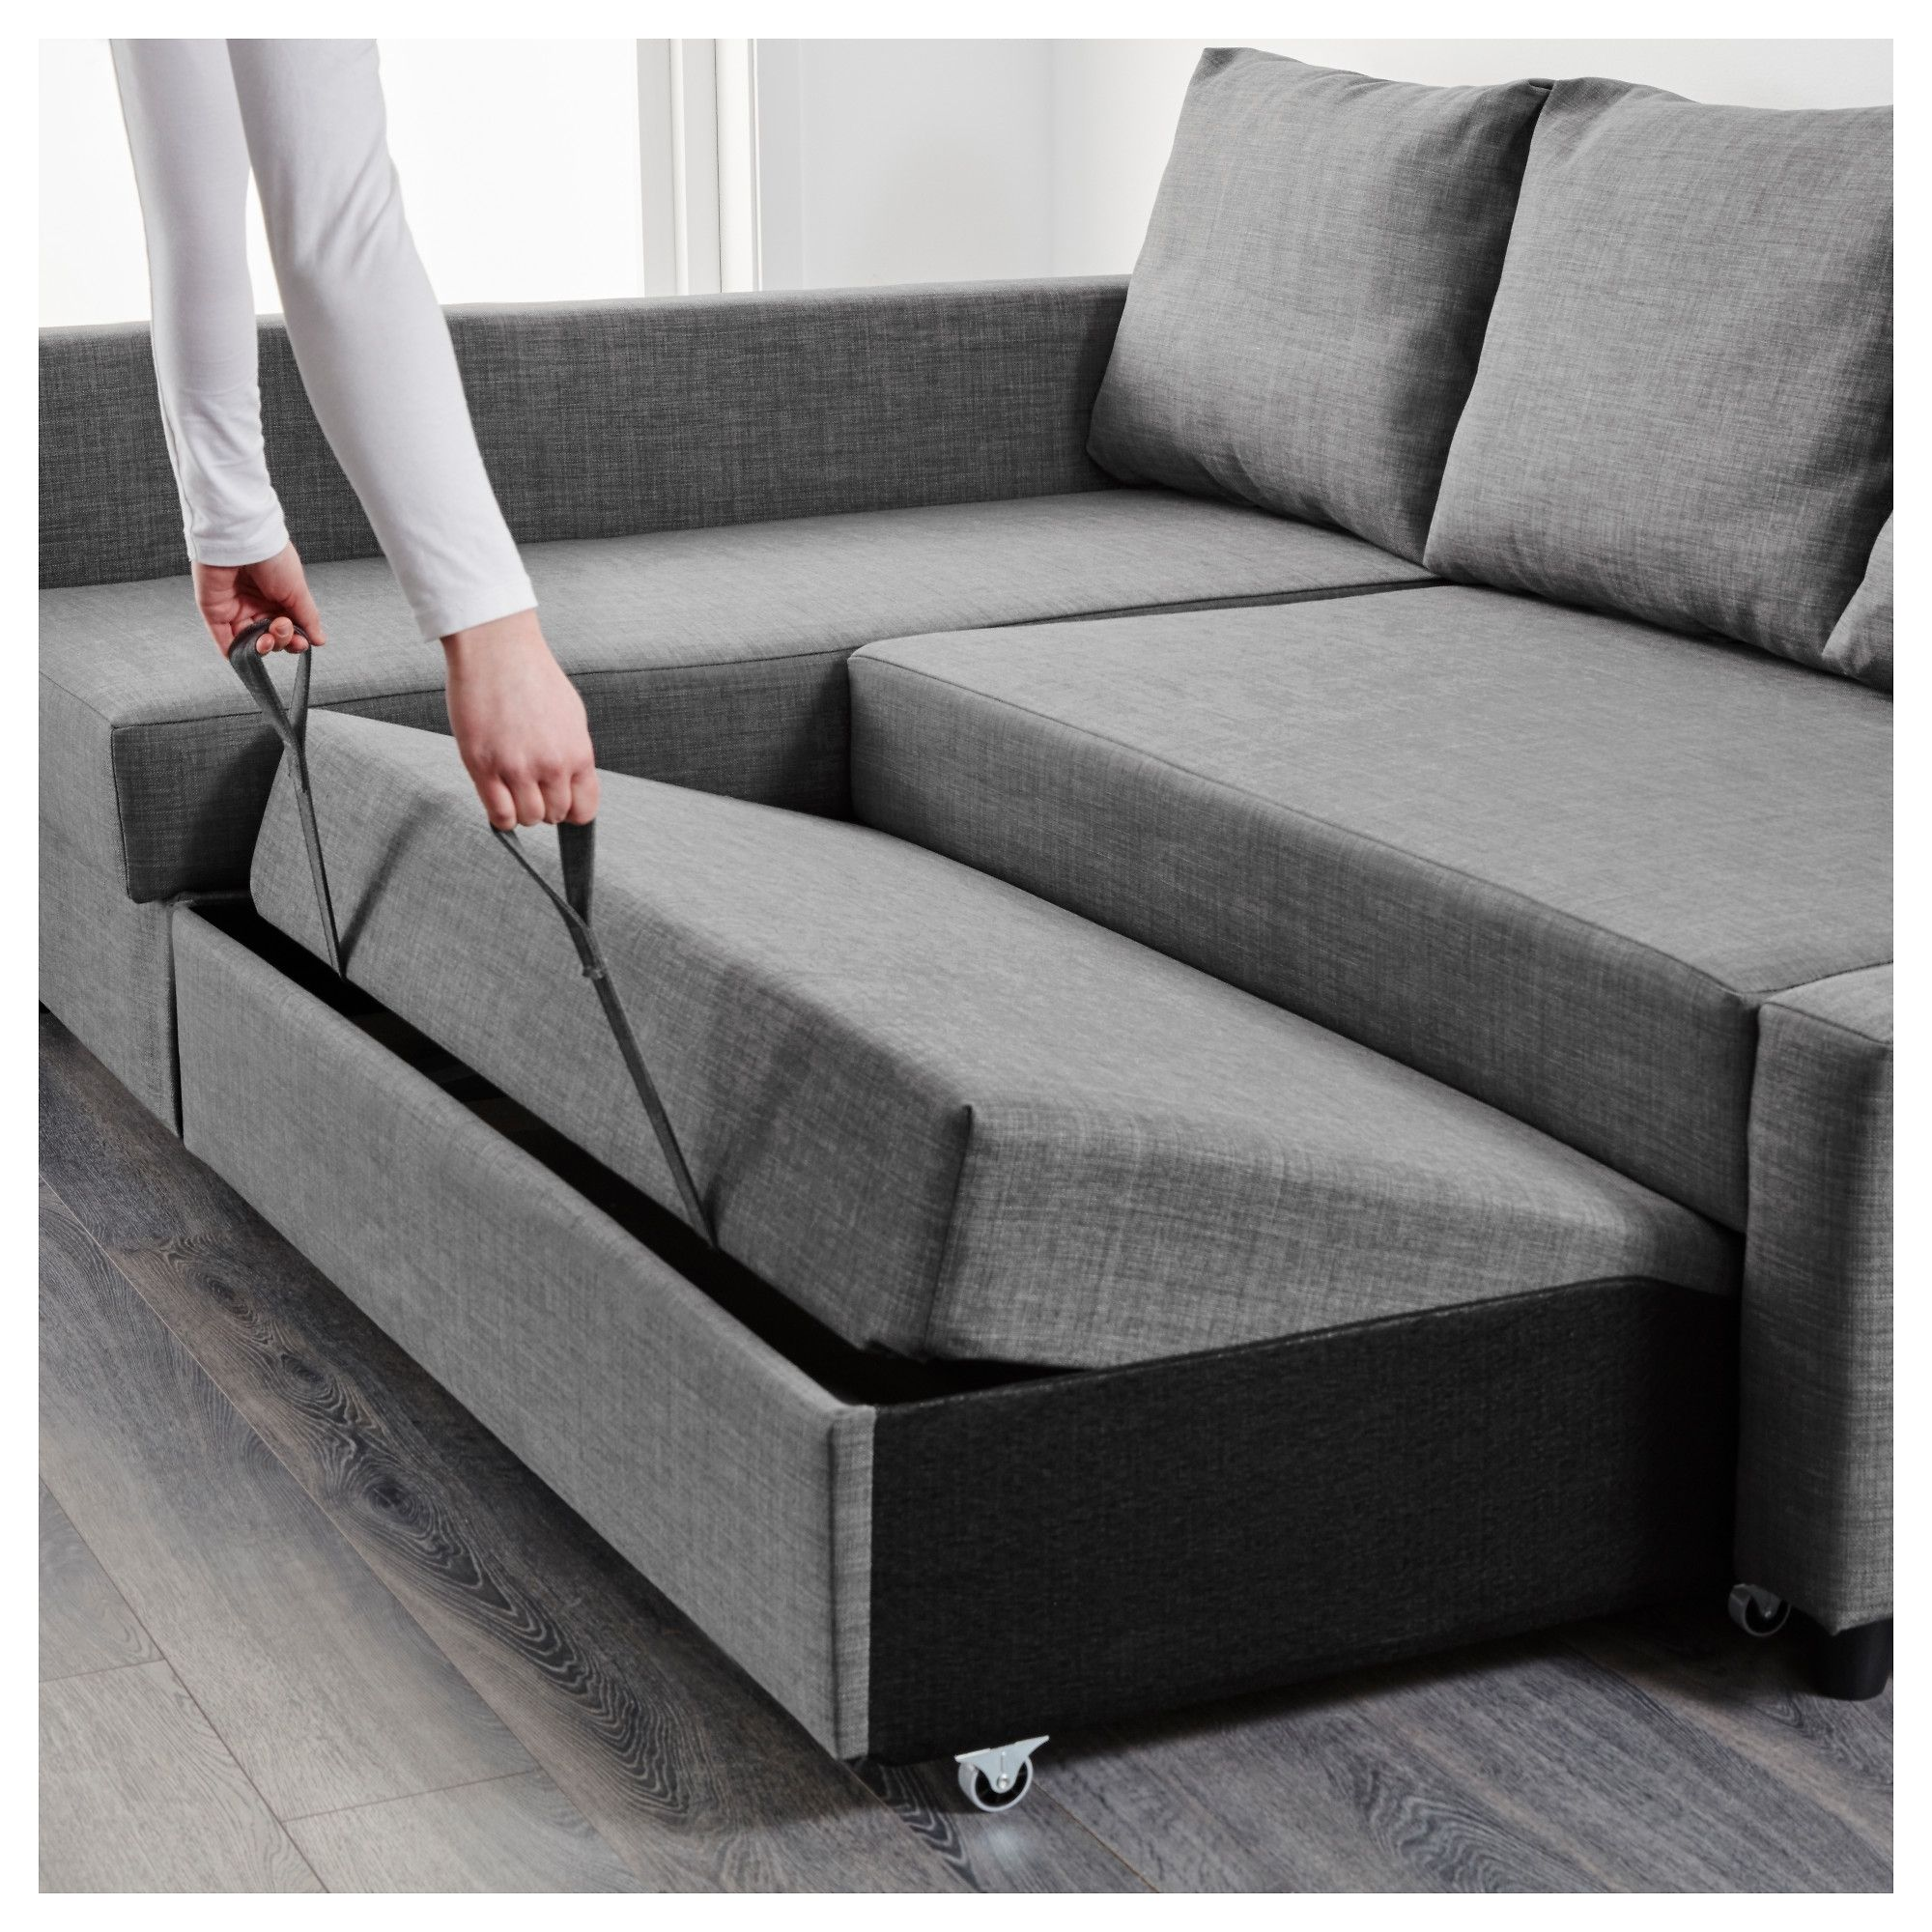 Ikea Corner Sofas With Storage Sofa Bed With Storage Corner Sofa With Storage Corner Sofa Bed With Storage